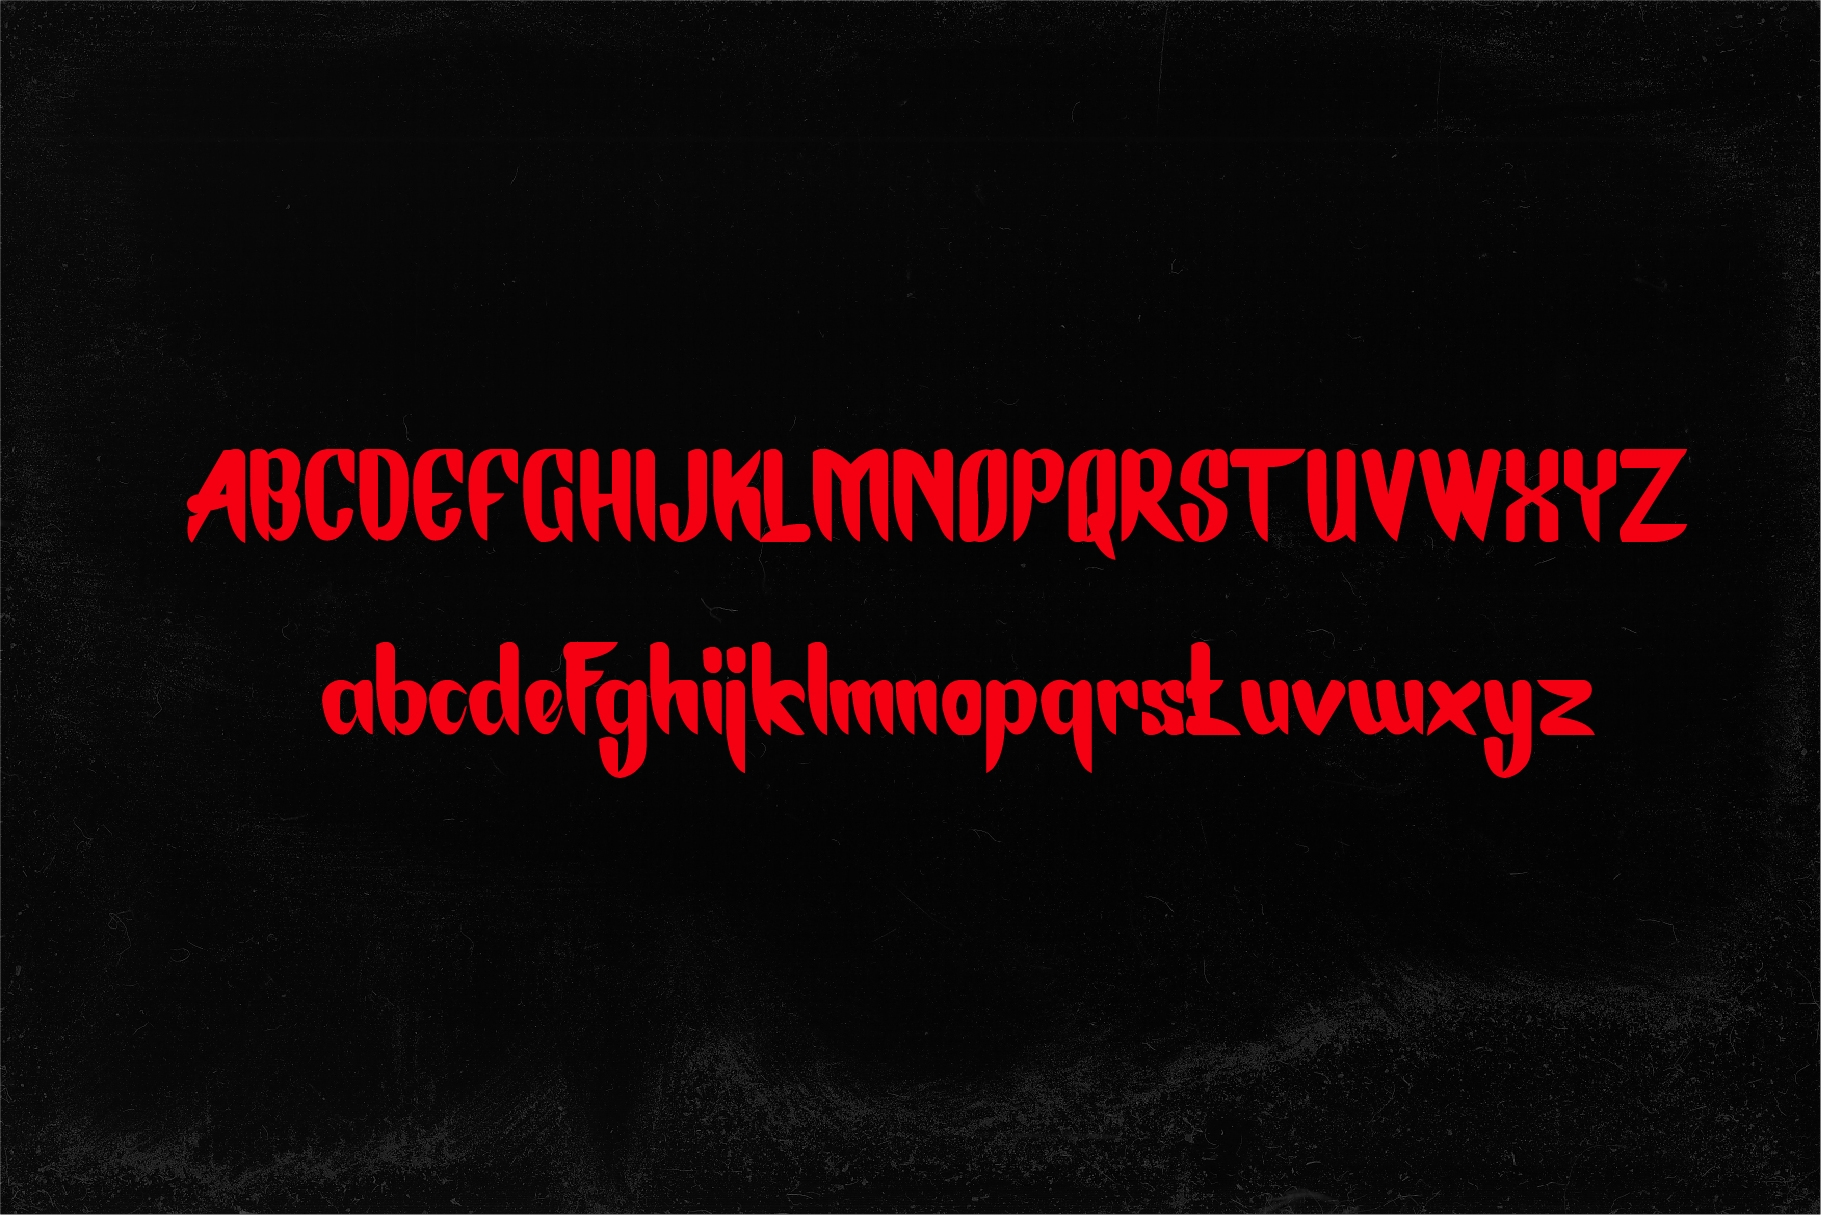 Ghesur - Modern Gothic Horror Serif Sports Typeface example image 4